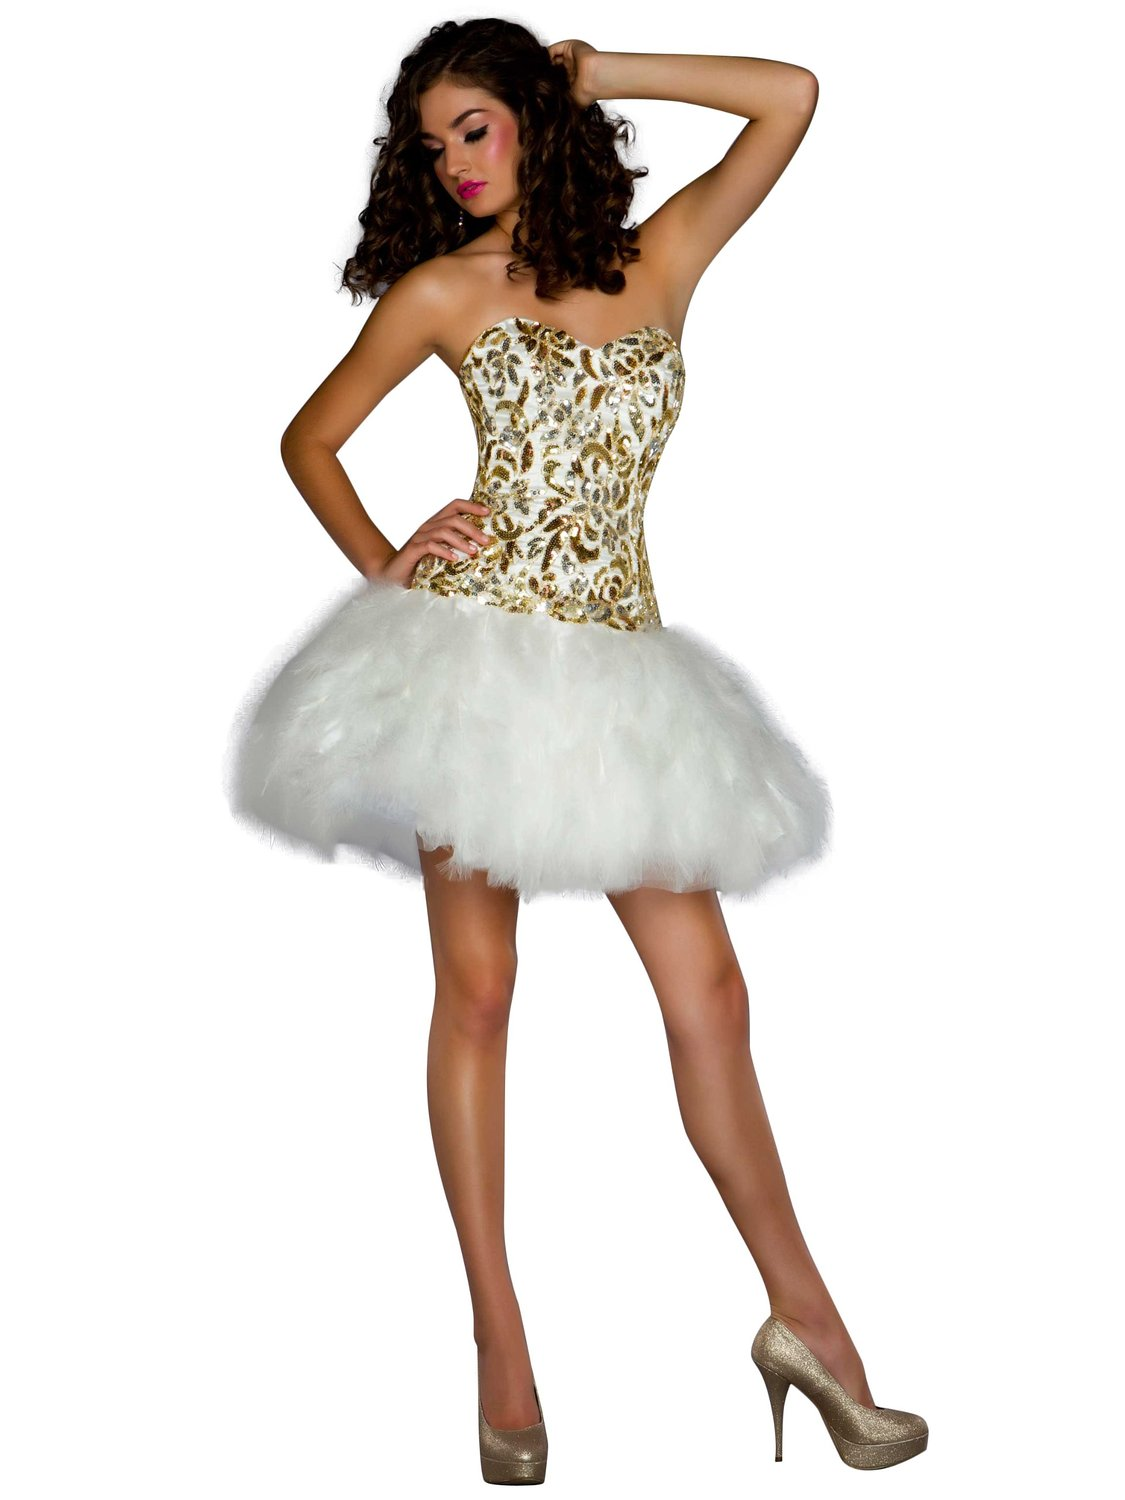 Mac duggal glittering strapless sequin feather mini party dress at amazon women's clothing store: